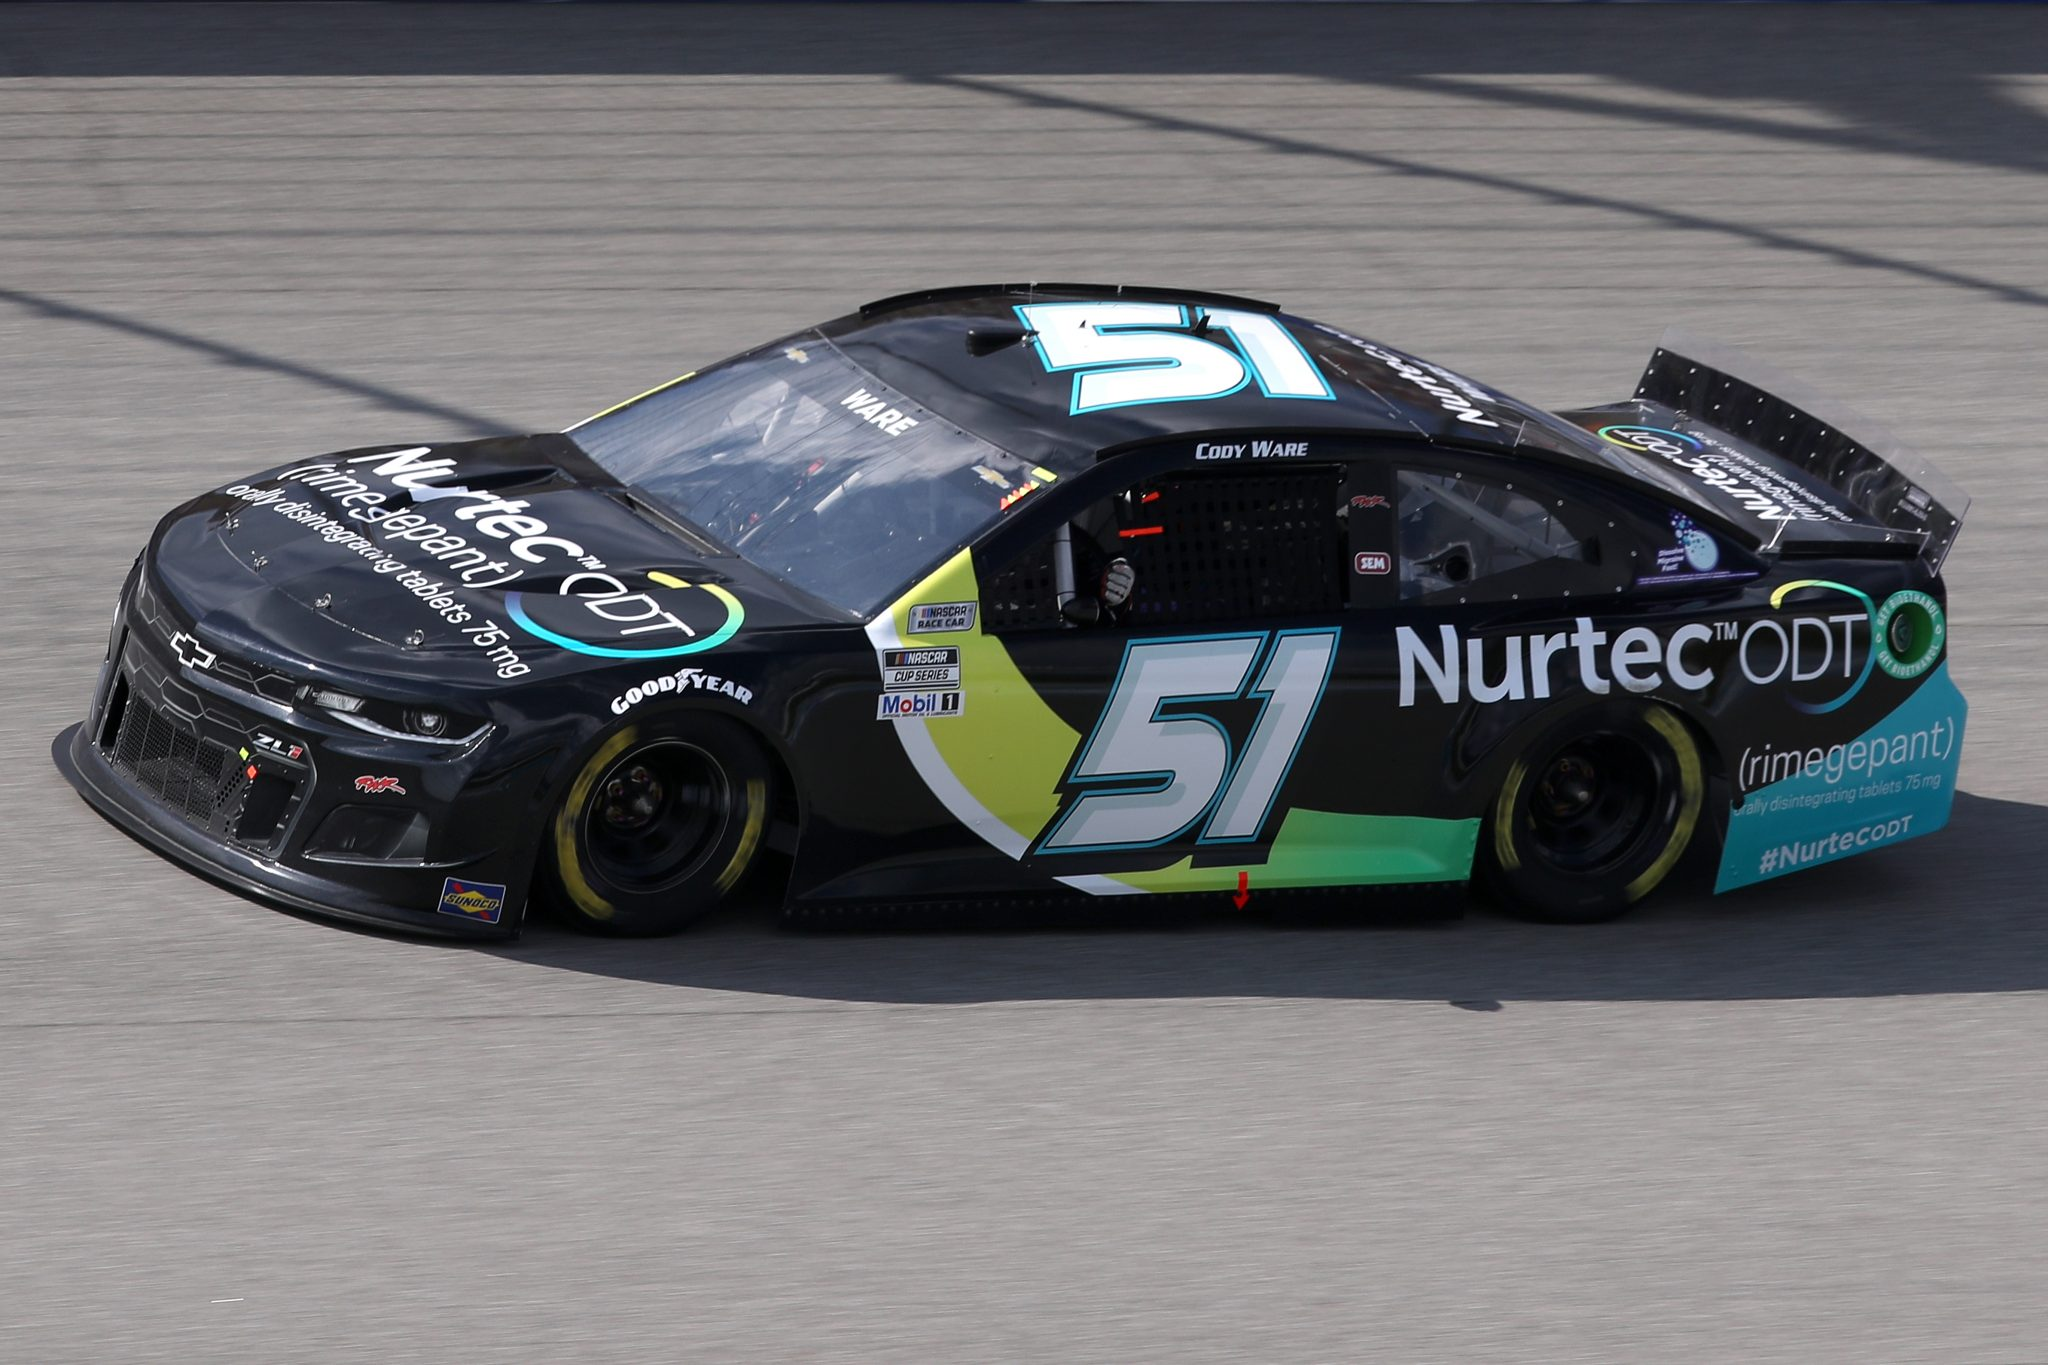 BROOKLYN, MICHIGAN - AUGUST 22: Cody Ware, driver of the #51 Nurtec ODT Chevrolet, drives during the NASCAR Cup Series FireKeepers Casino 400 at Michigan International Speedway on August 22, 2021 in Brooklyn, Michigan. (Photo by Sean Gardner/Getty Images) | Getty Images